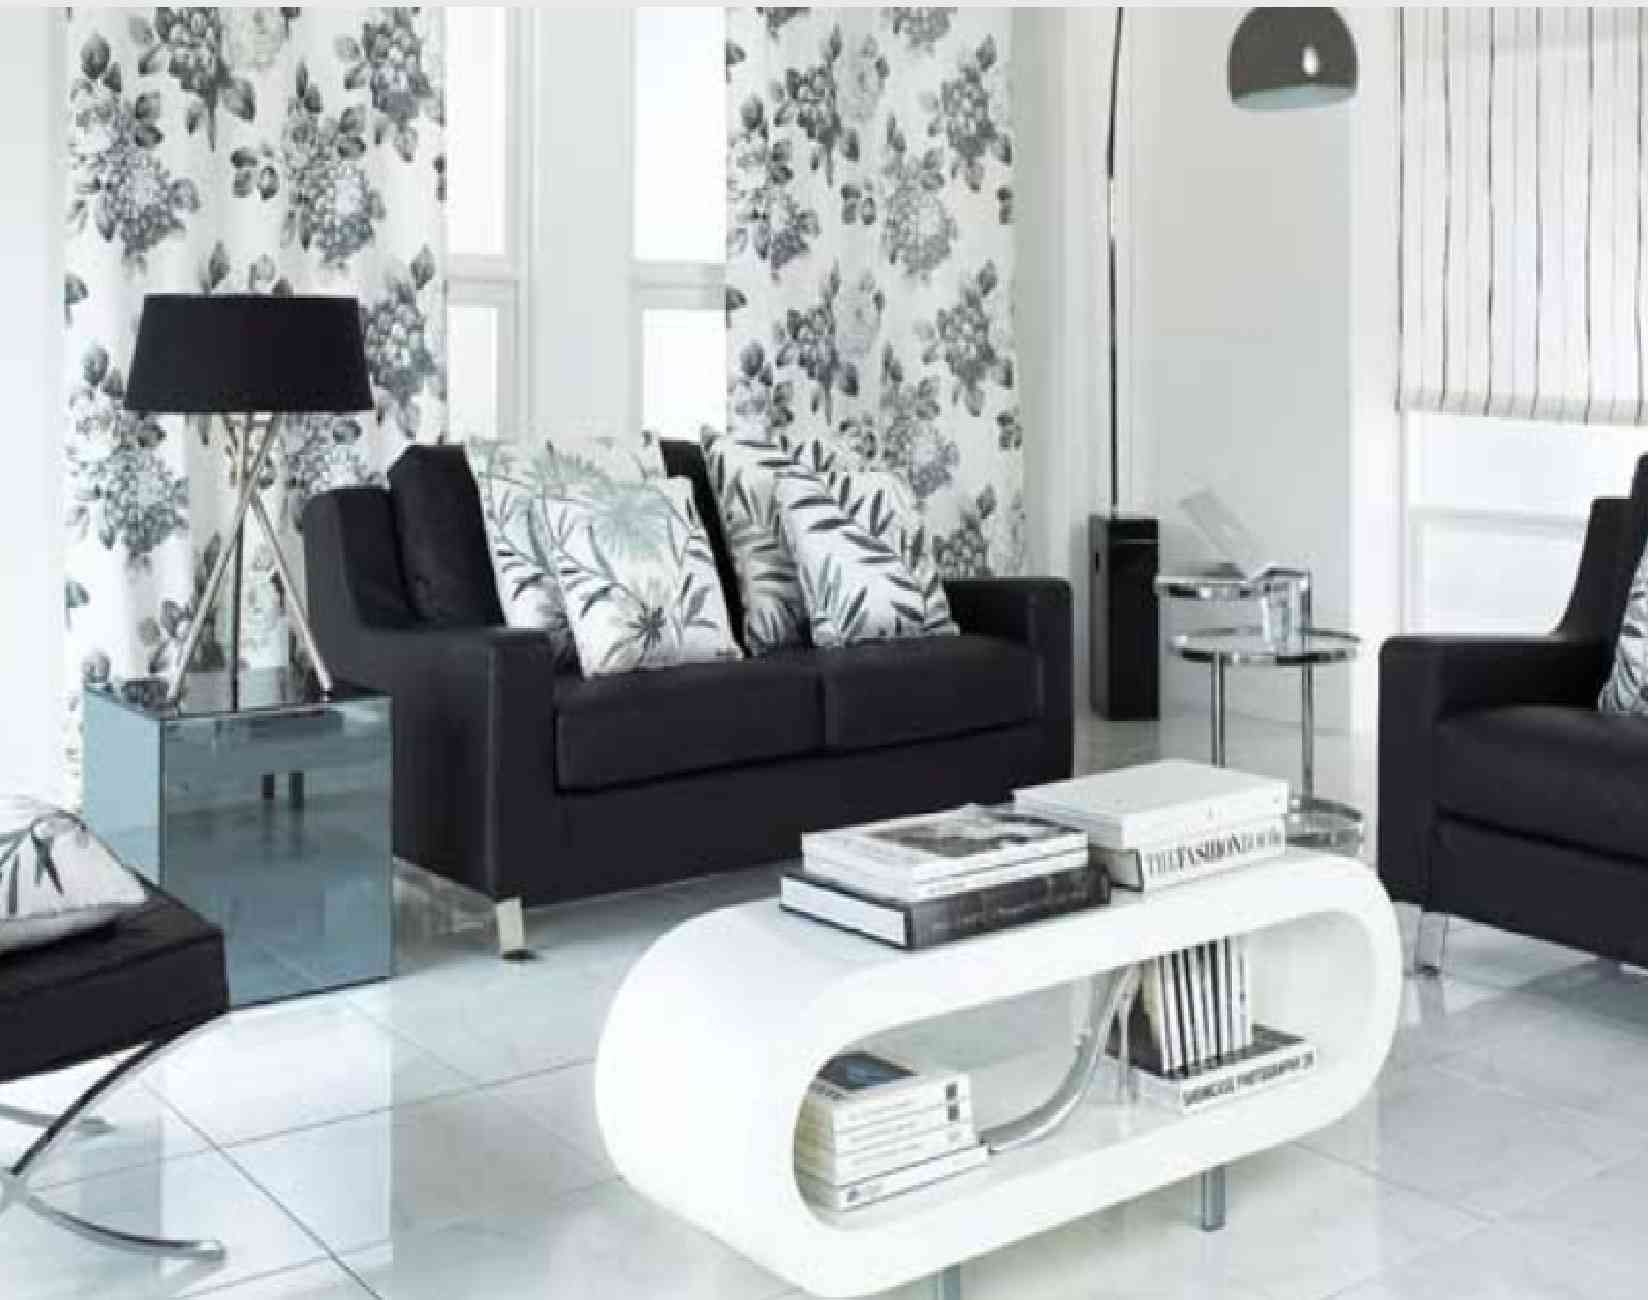 the theme of black and white modern living room interior design interior design - Black And White Living Room Decor